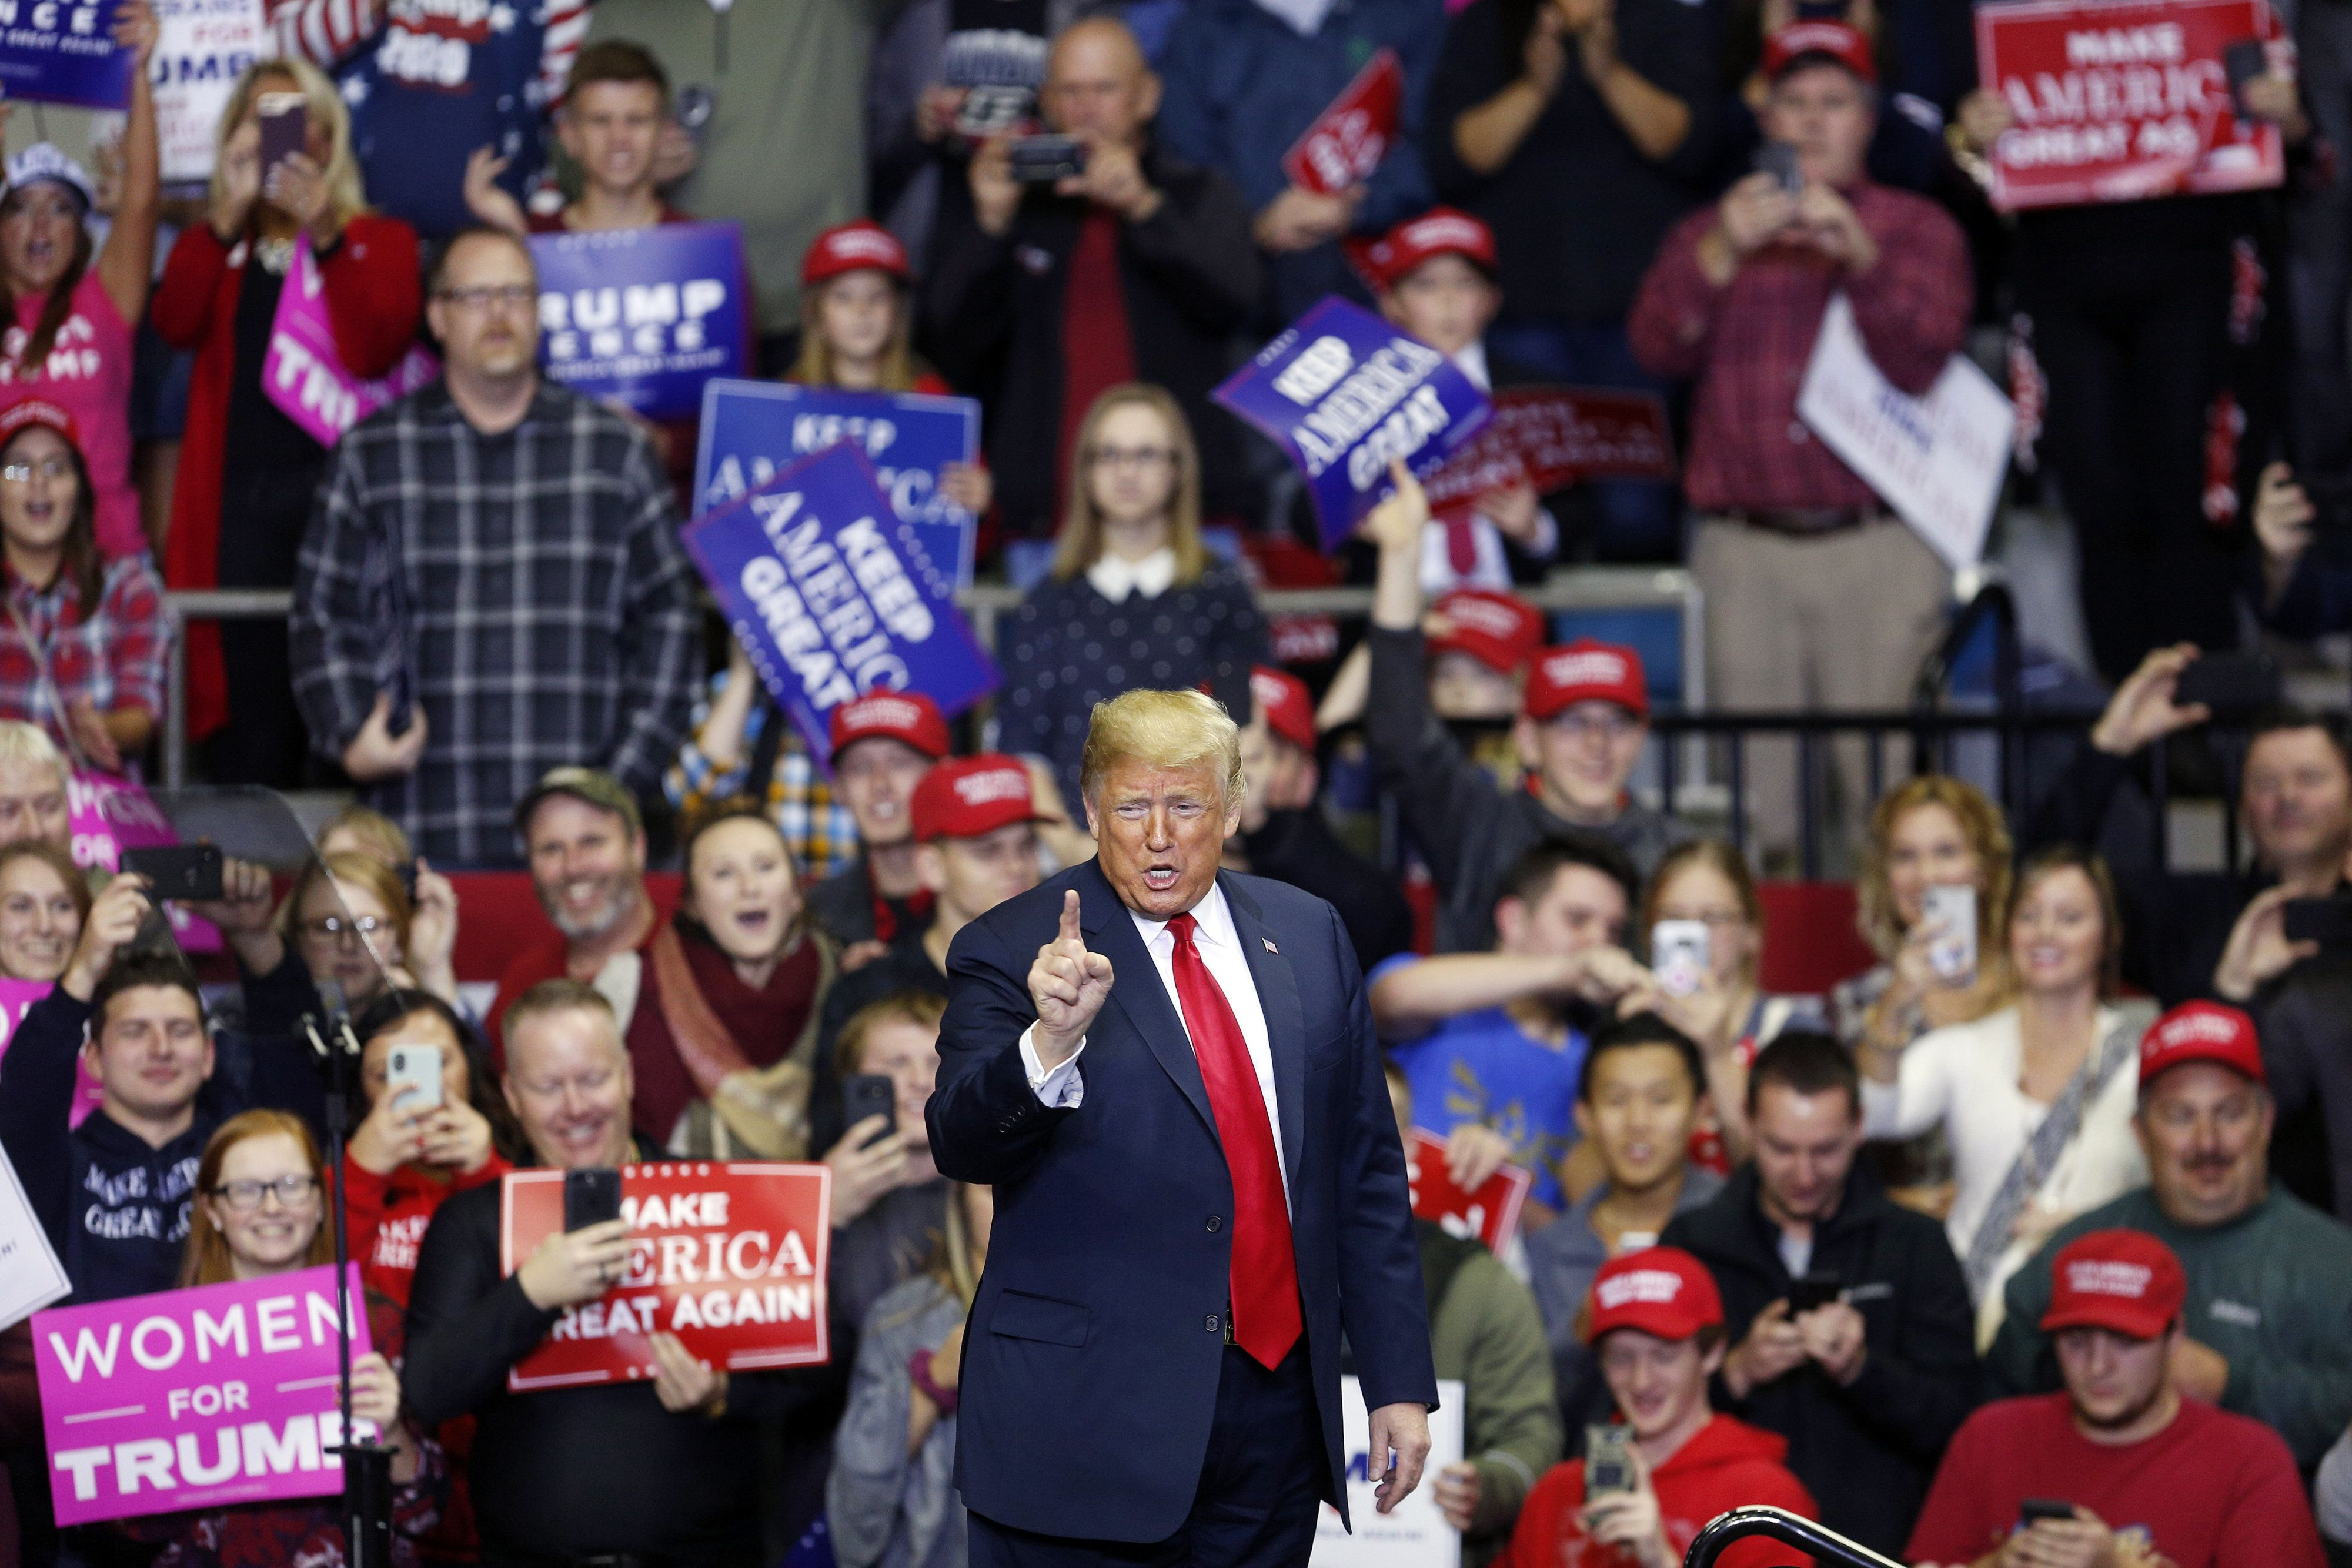 U.S. President Donald Trump gestures during a rally in Fort Wayne, Indiana, U.S., on Monday, Nov. 5, 2018. Trump kicked off his last day of campaigning ahead of elections that will determine control of Congress, as he tweeted support for Republican candidates and condemned their Democratic opponents. Photographer: Luke Sharrett/Bloomberg via Getty Images